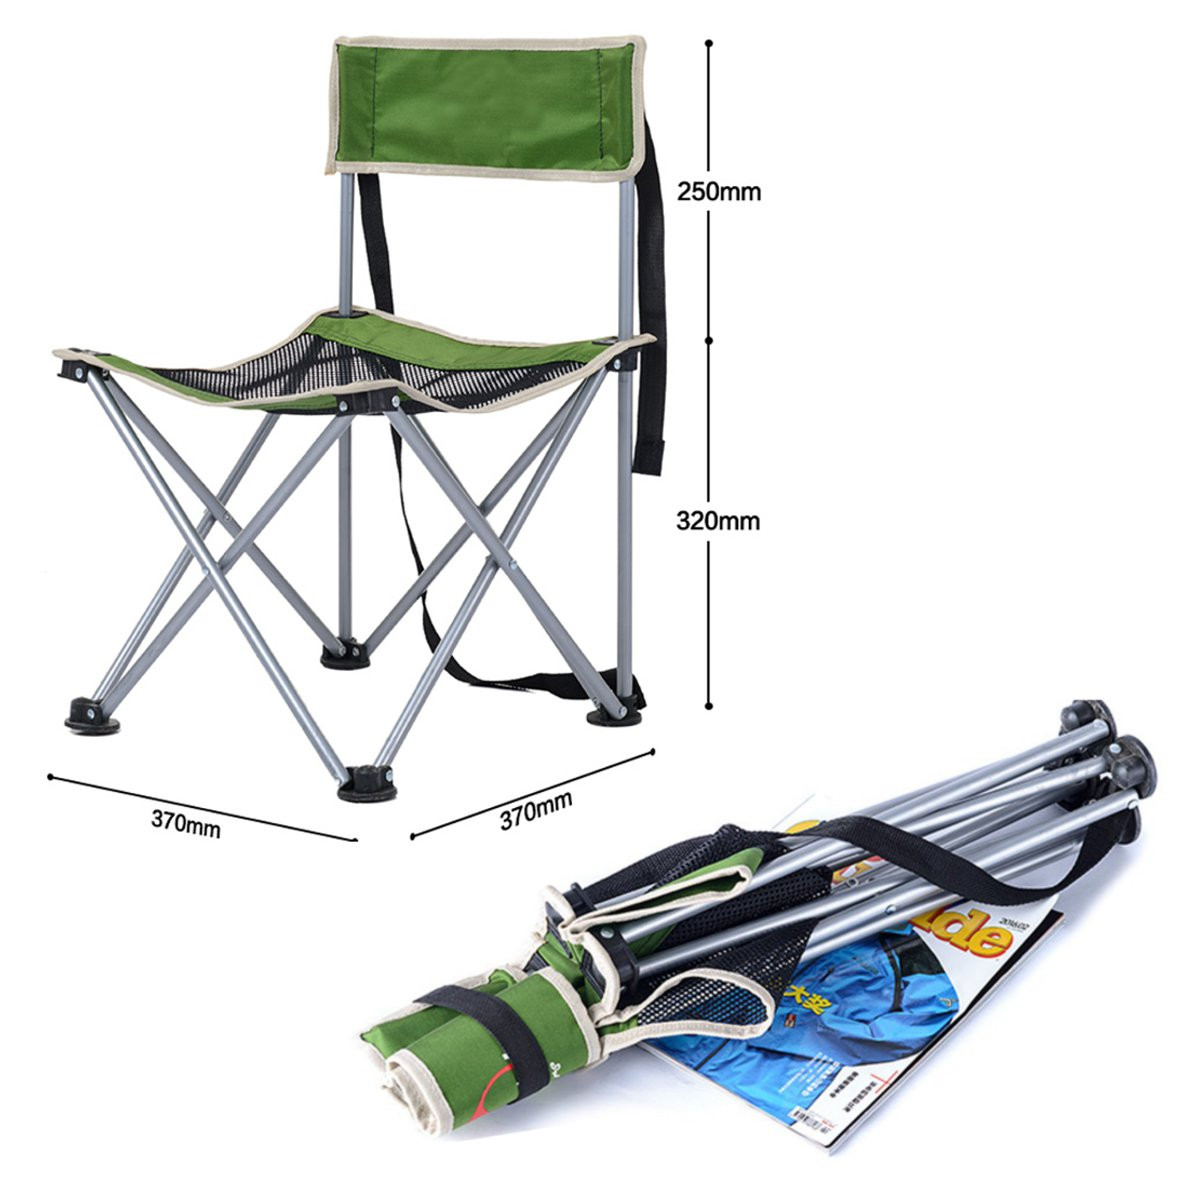 fishing chair accessories for sale personalized directors outdooors camping portable folding light weight